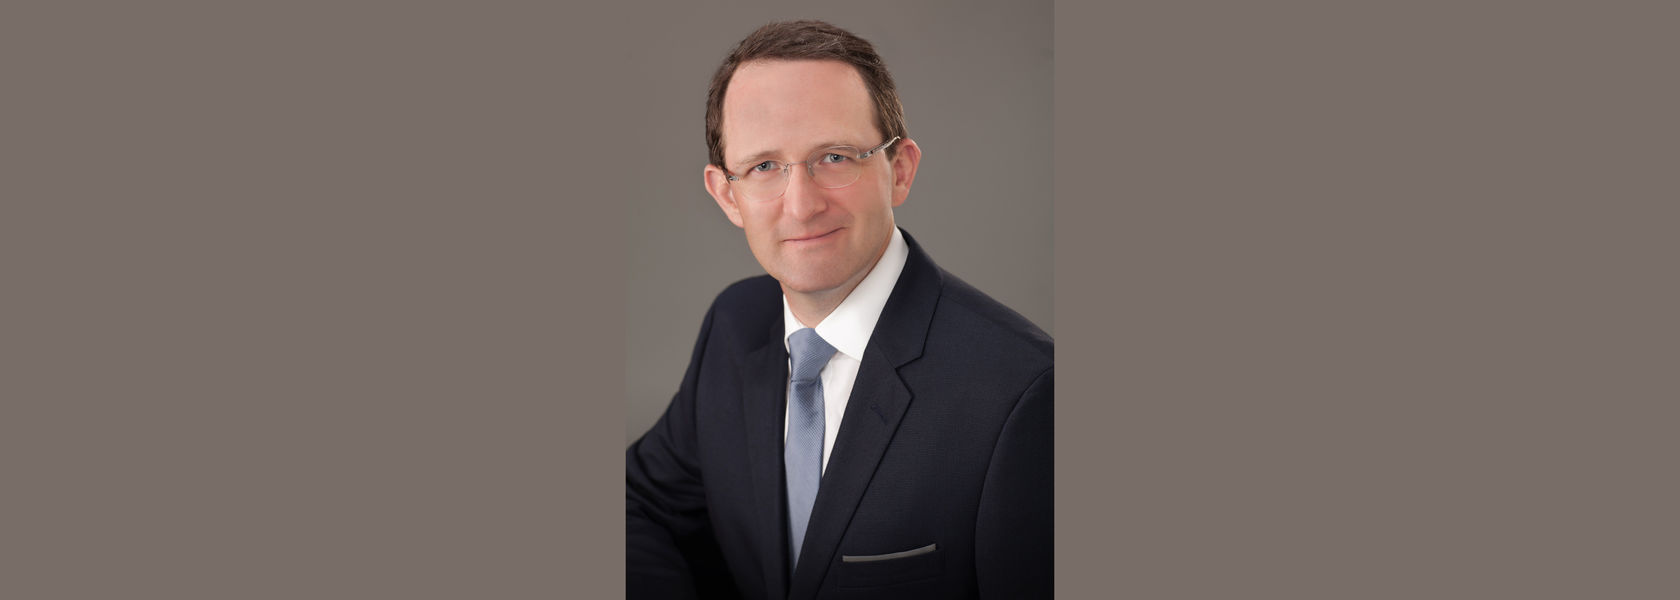 Bechtel announces major management appointment